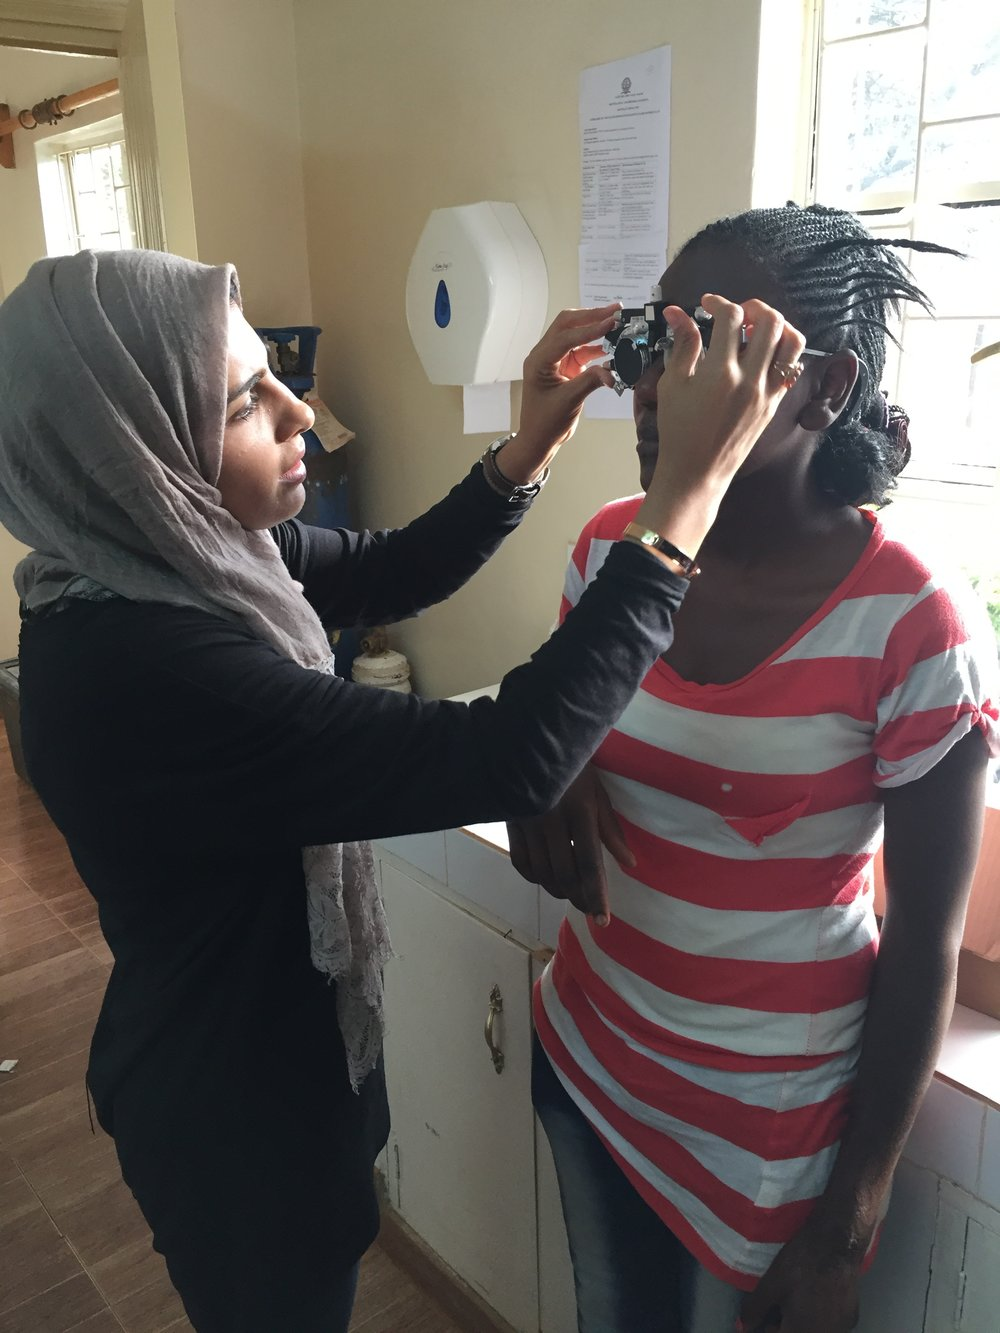 Indoors, Dr. Sidiqa examines patients' eyesight and discusses the Community Health Worker screening program